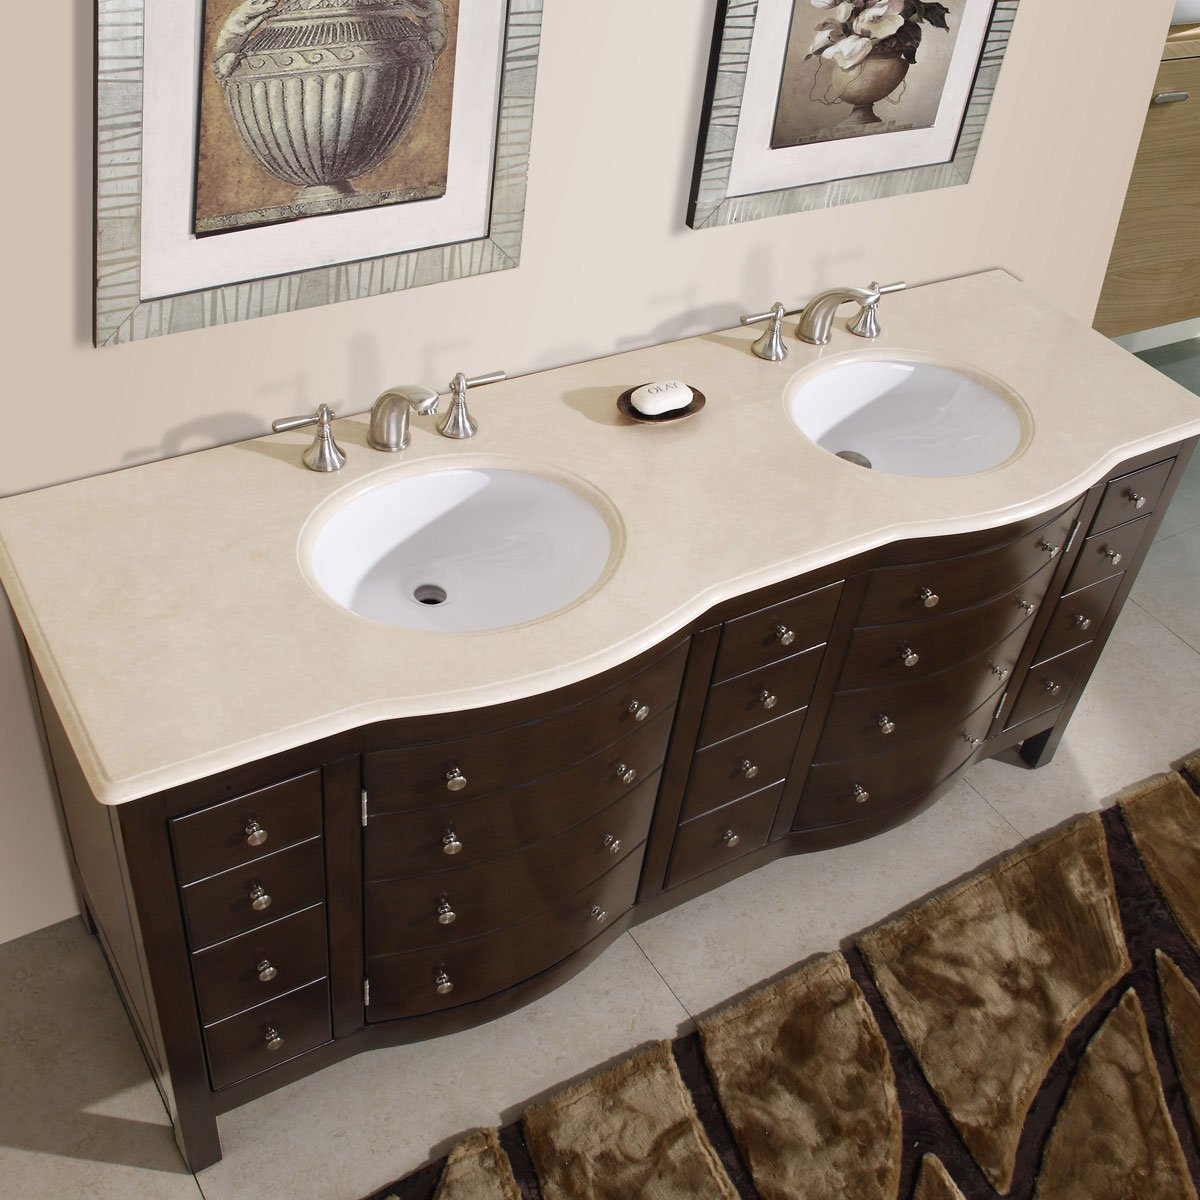 amazoncom silkroad exclusive cream marfil marble stone double sink bathroom vanity with cabinet 72 inch home kitchen